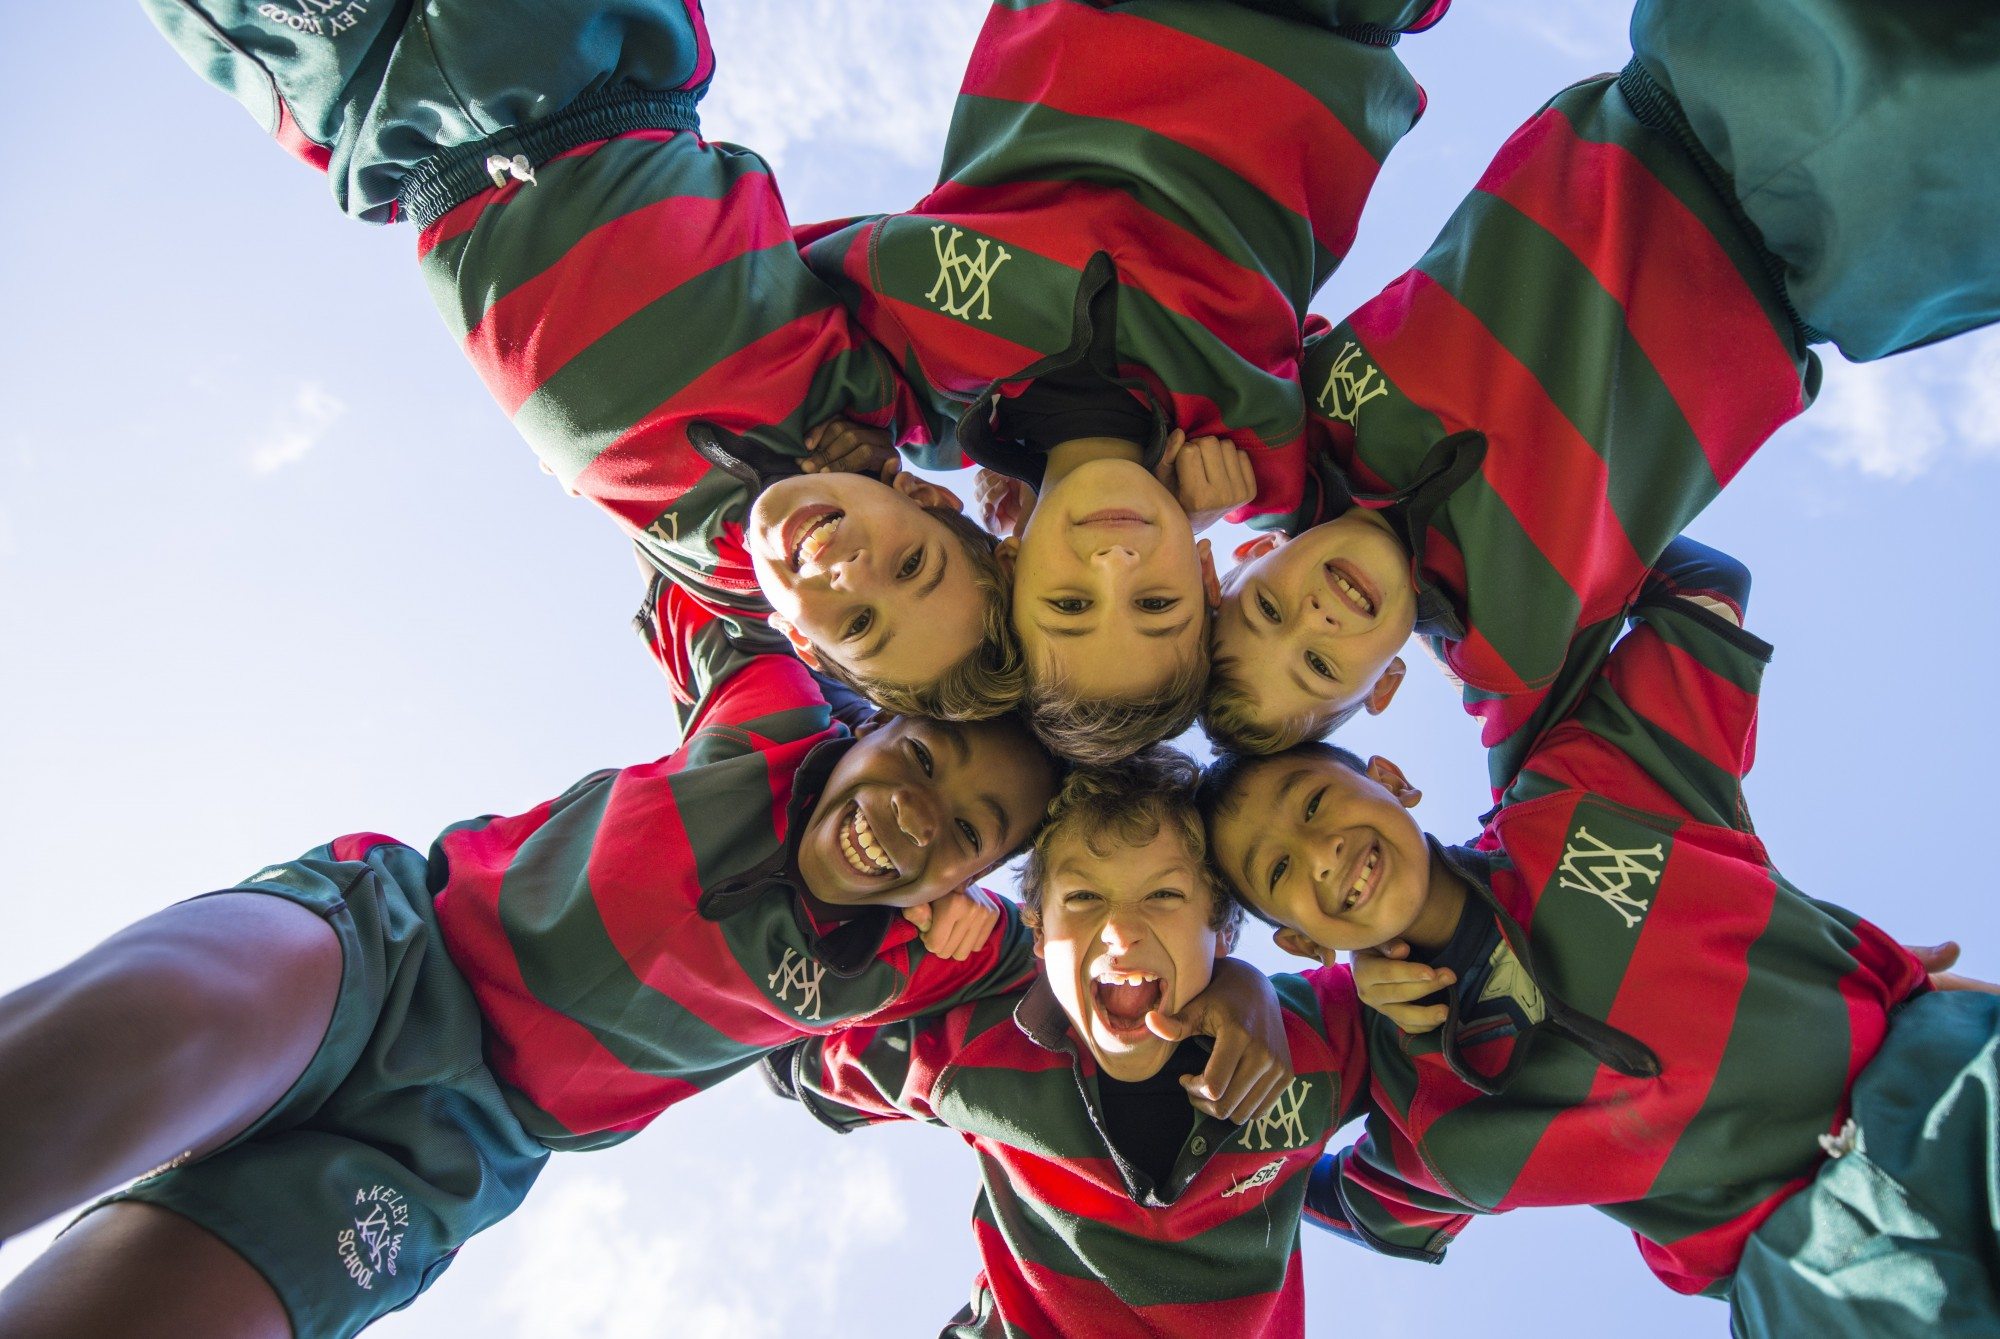 Boys from akeley wood school, looking down at the camera in a circle wearing their rugby shirts.